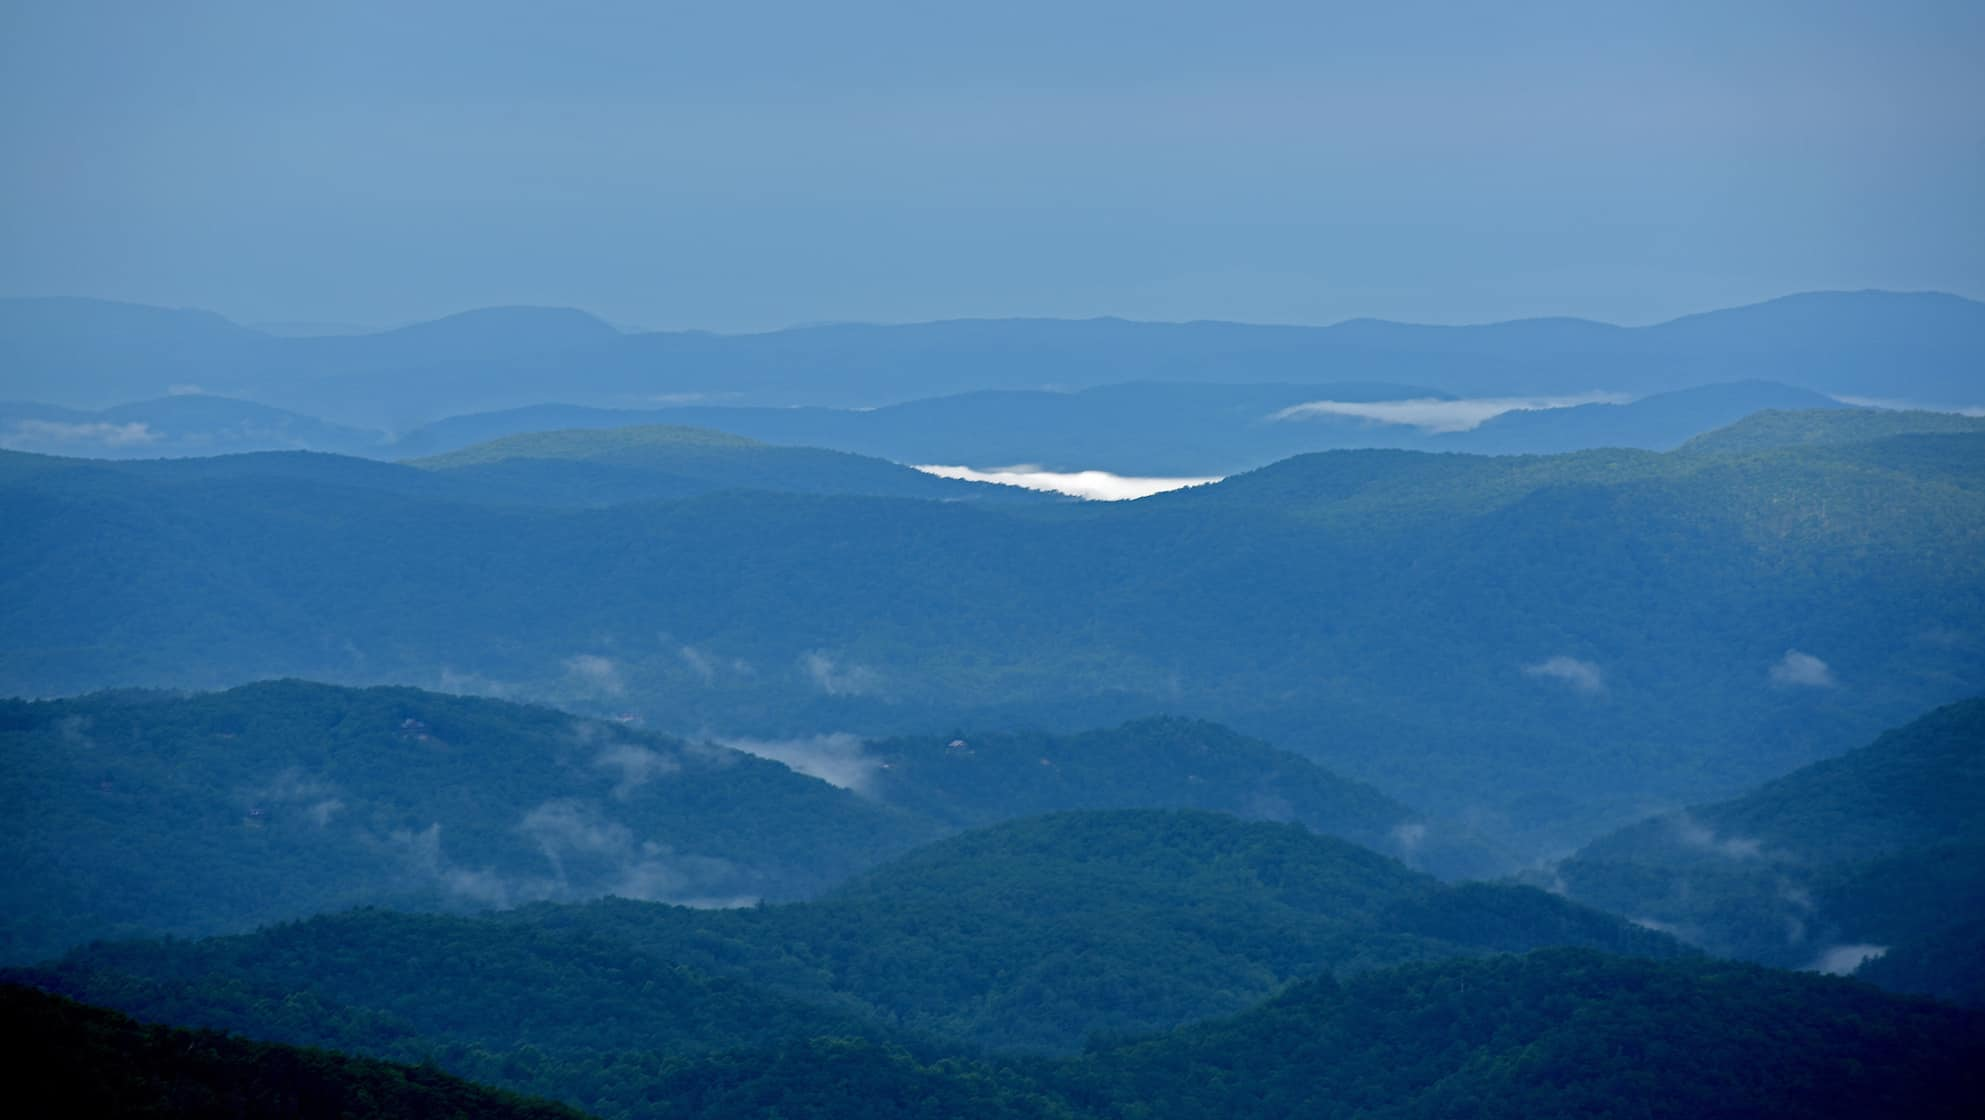 The view from Thunder Hill Overlook along the Blue Ridge Parkway in Watauga County.